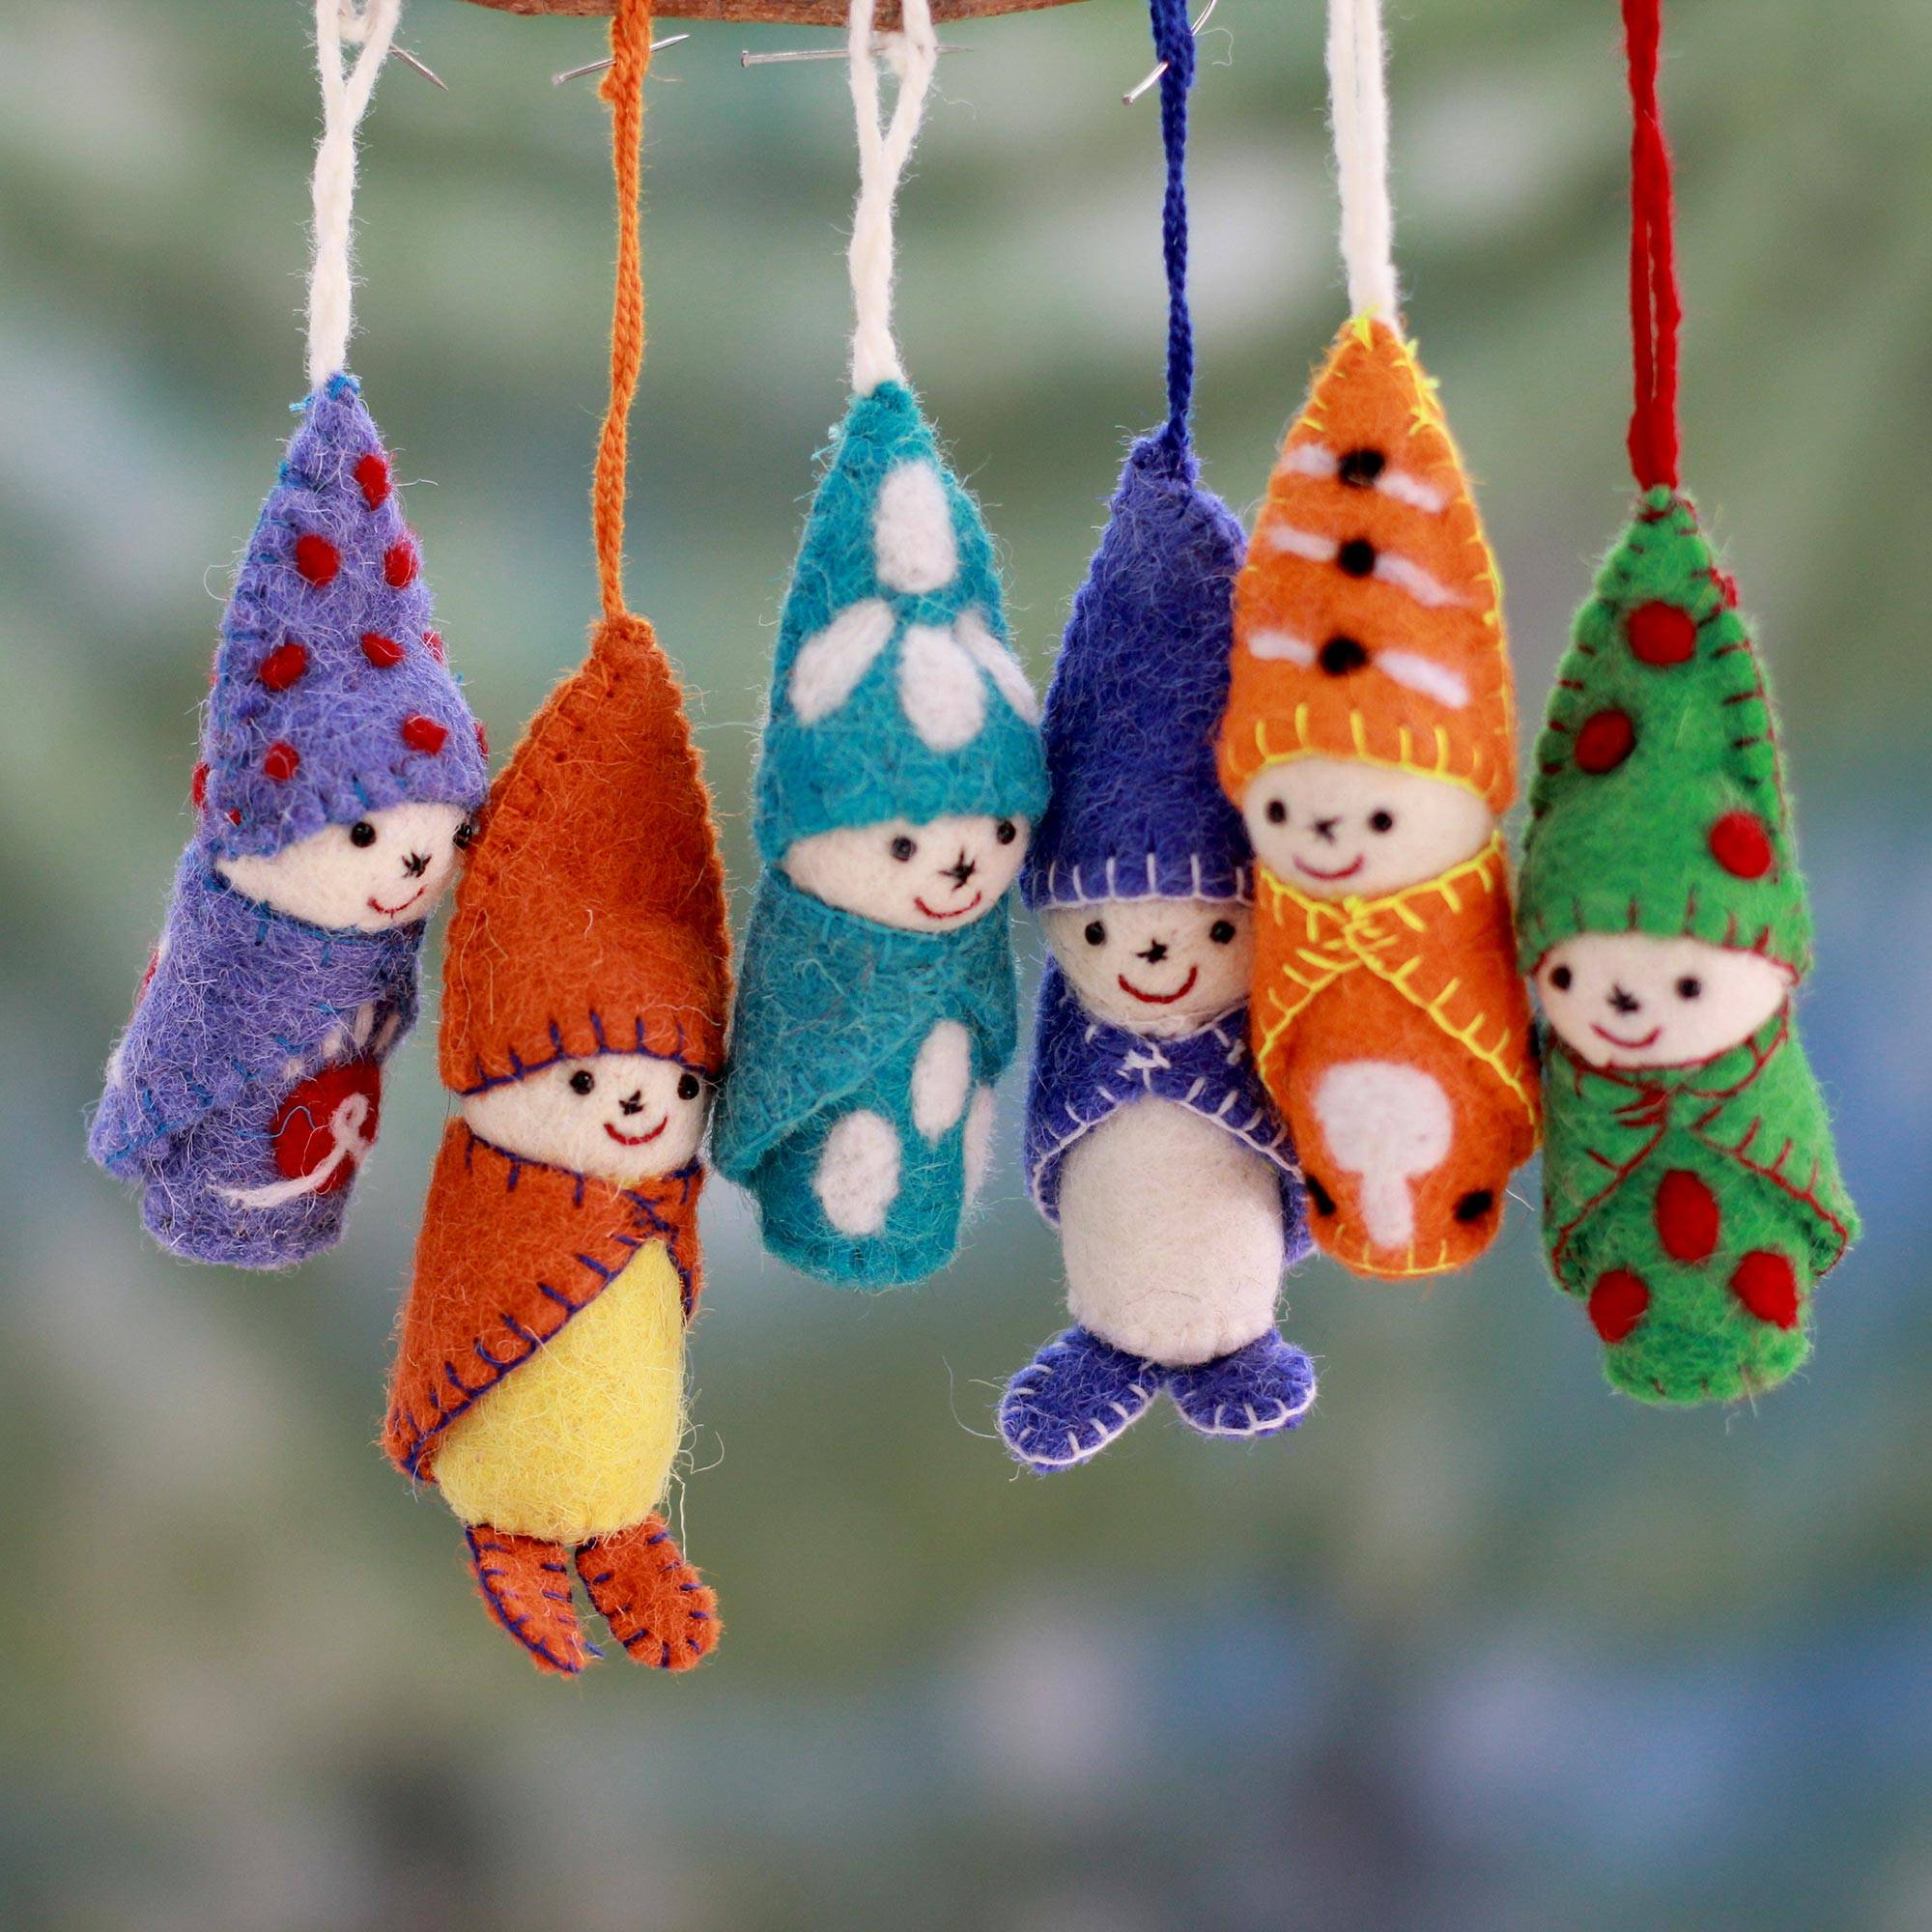 Babes in Snowsuits Set of 6 Handmade Ornaments from India holiday card